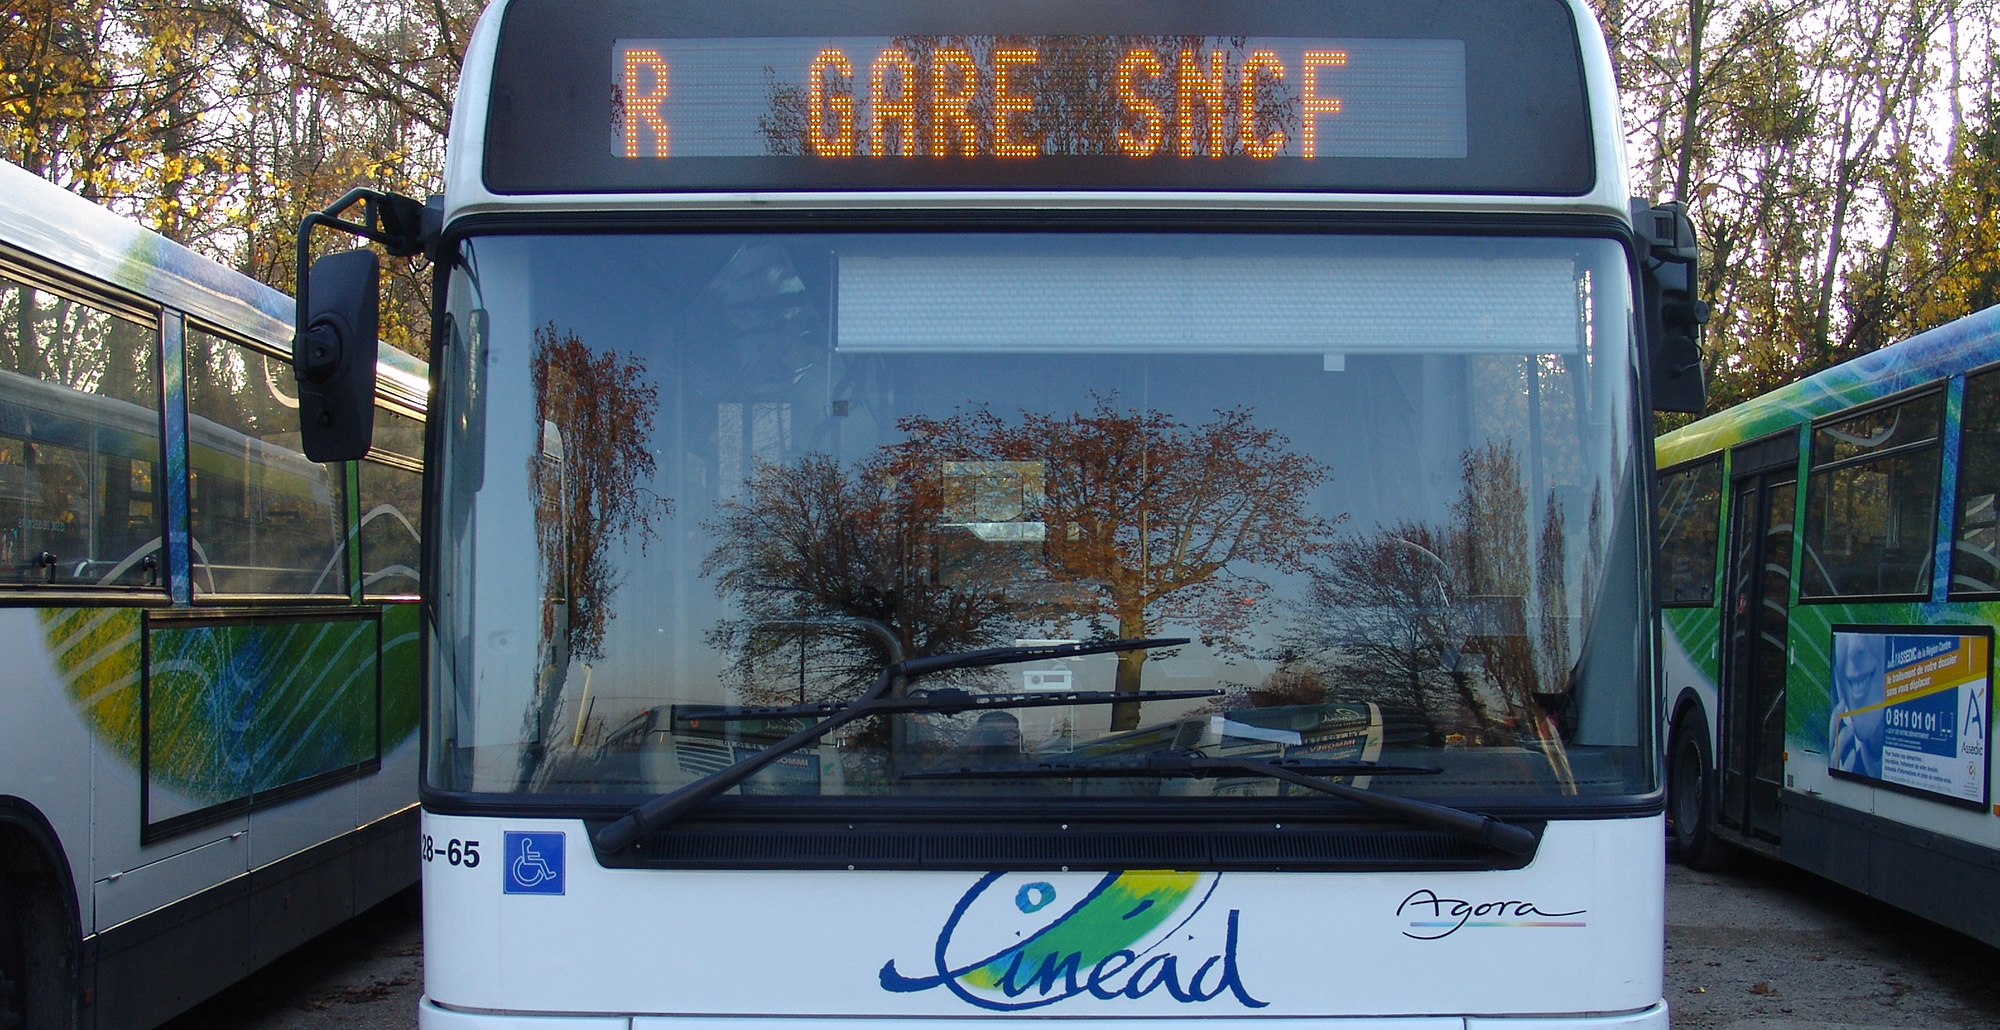 Bus Linead